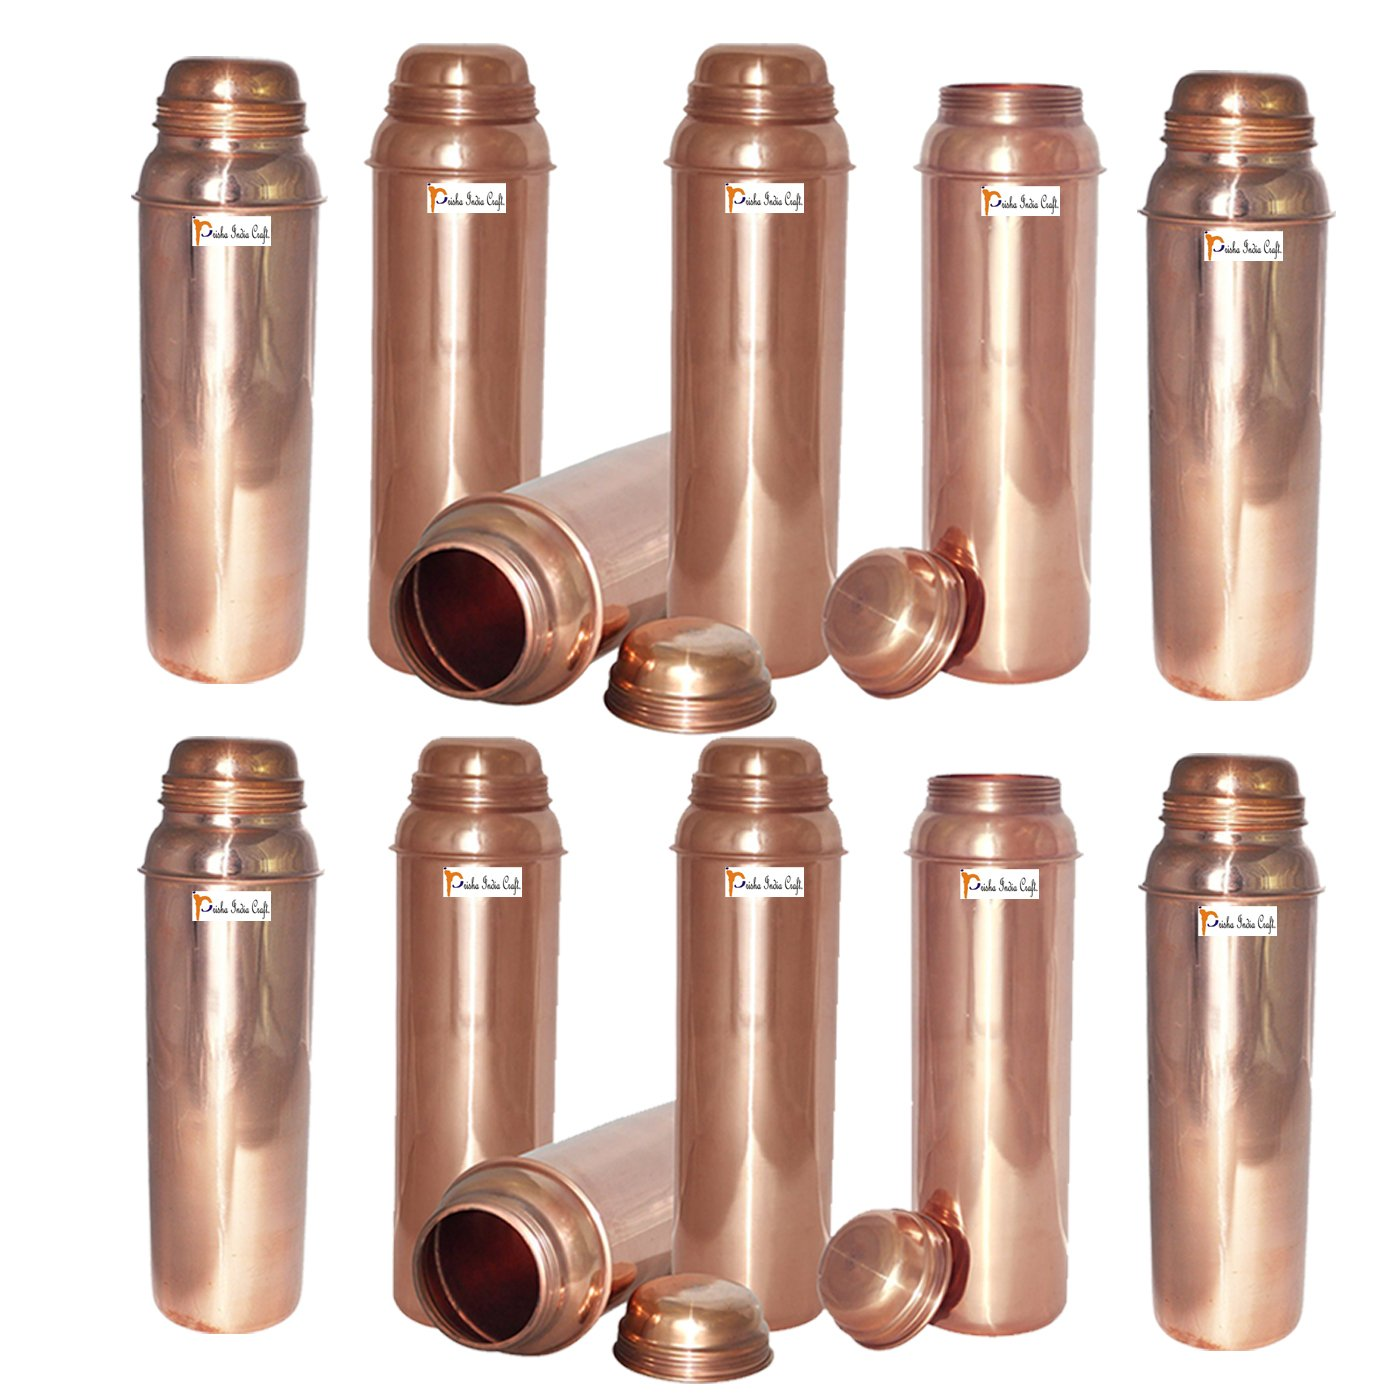 850ml / 28.74oz - Set of 12 - Prisha India Craft ® Pure Copper Water Bottle for Health Benefits - Water Pitcher Bottles - Handmade Christmas Gift Item